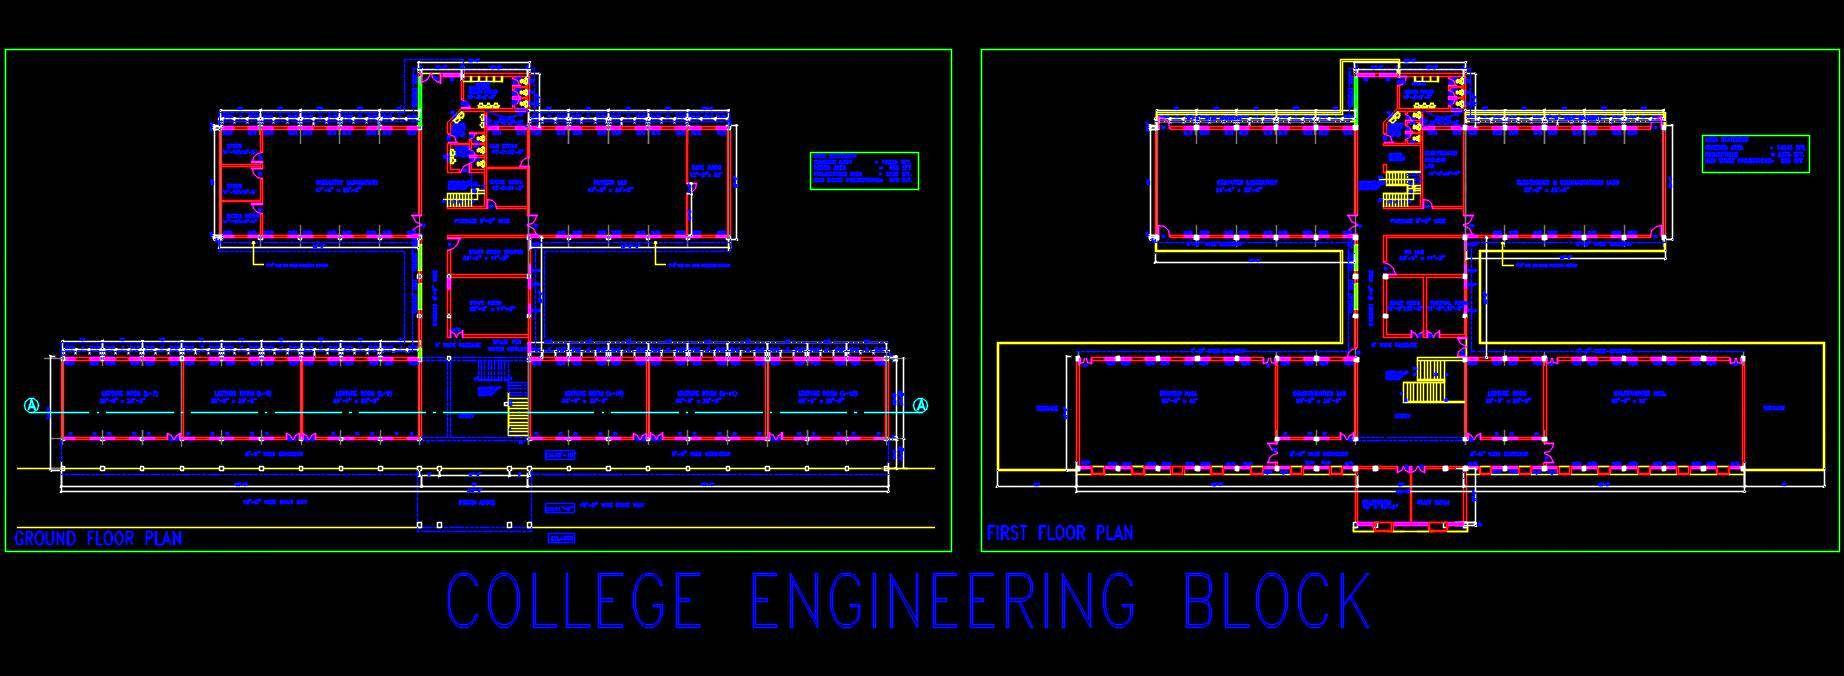 College Engineering Block Design Detail